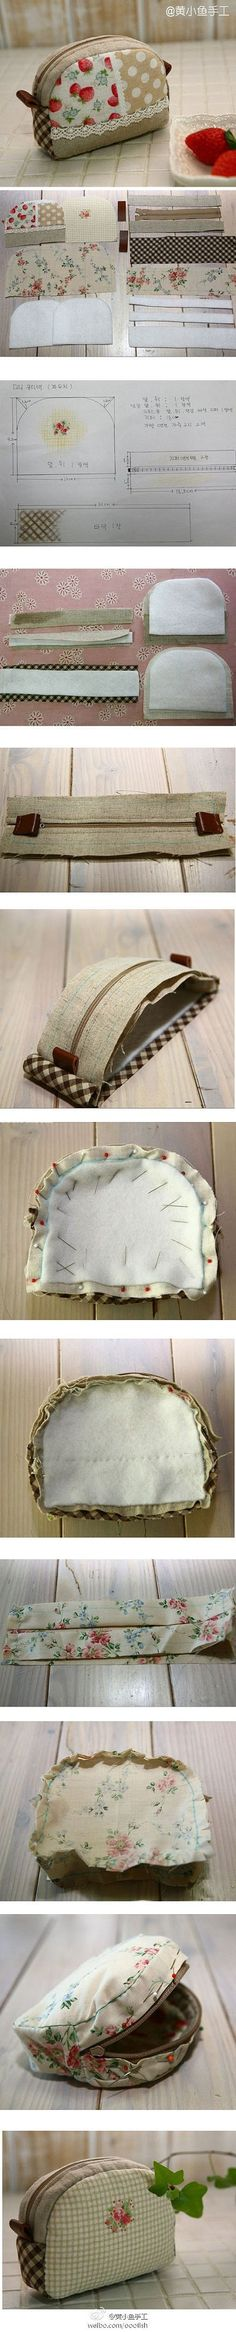 67 best tutorial images on Pinterest | Tutorials, Wallets and Clutch bag